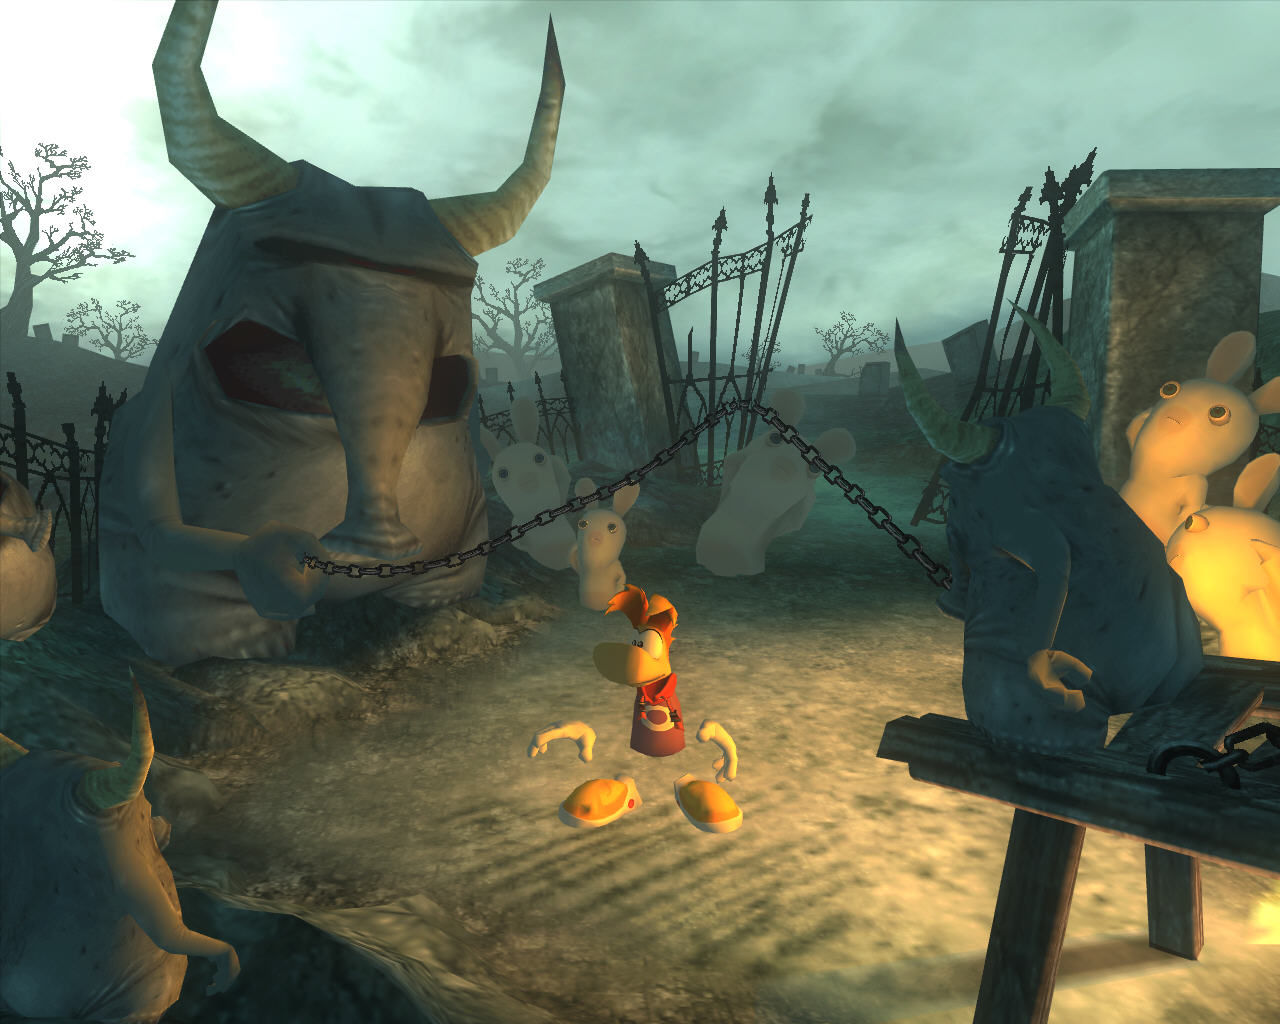 Rayman Raving Rabbids Windows Jump over the metal chain